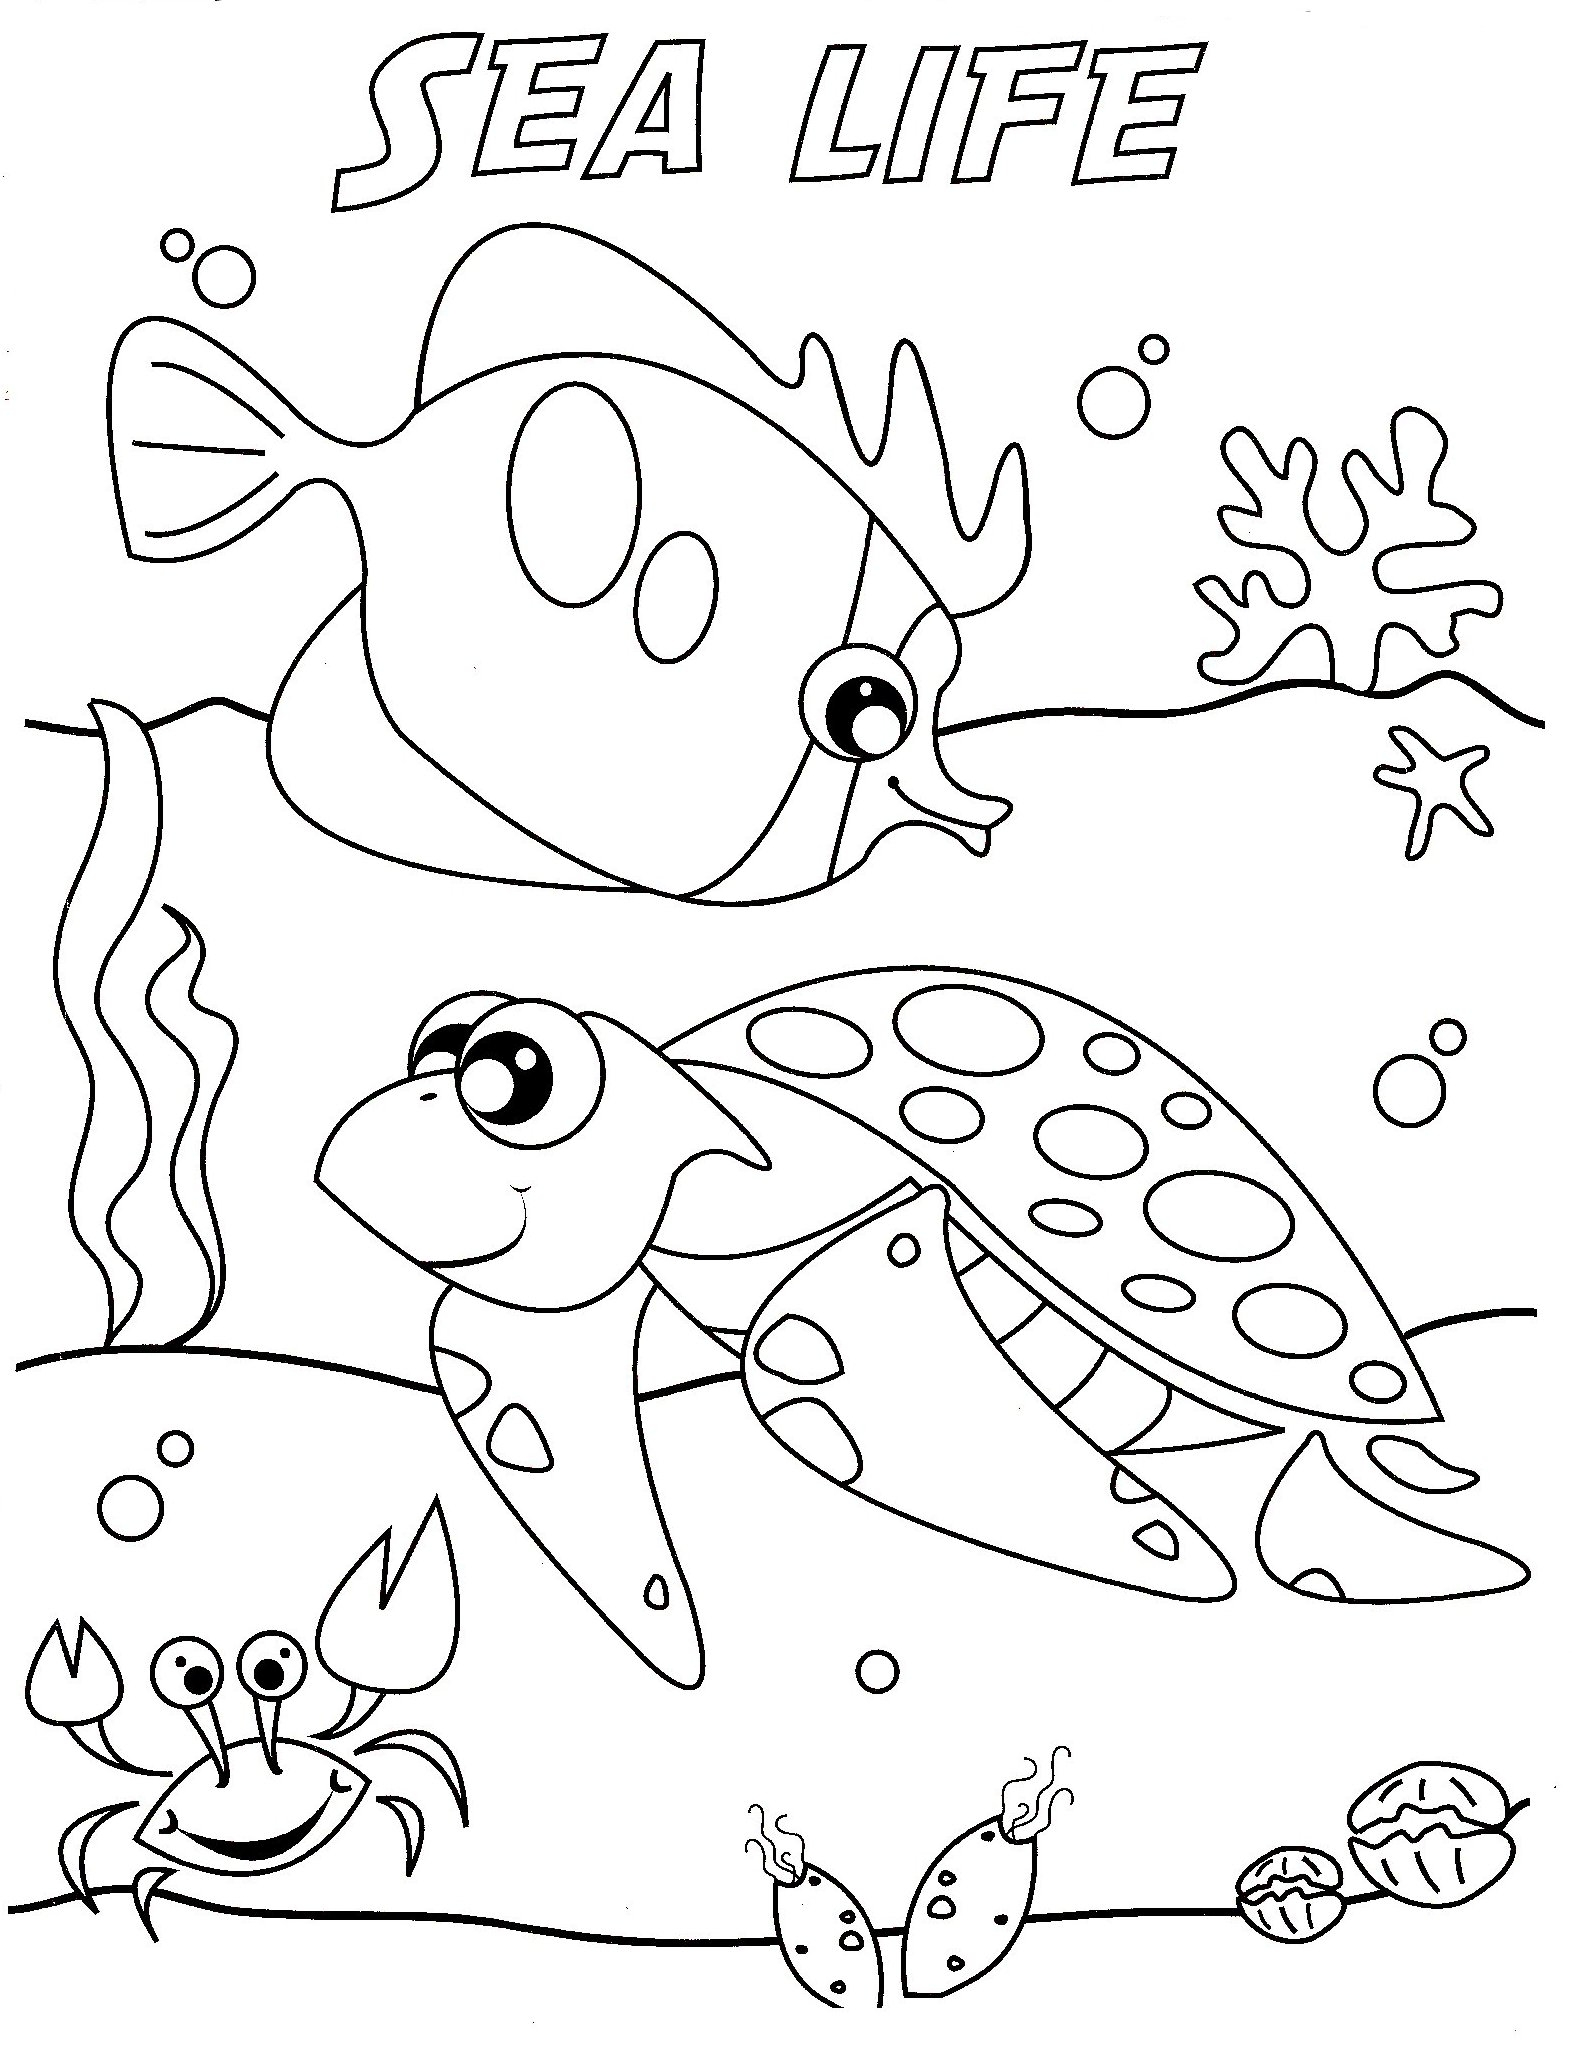 Ocean Coloring Pages For Kids At Getcolorings